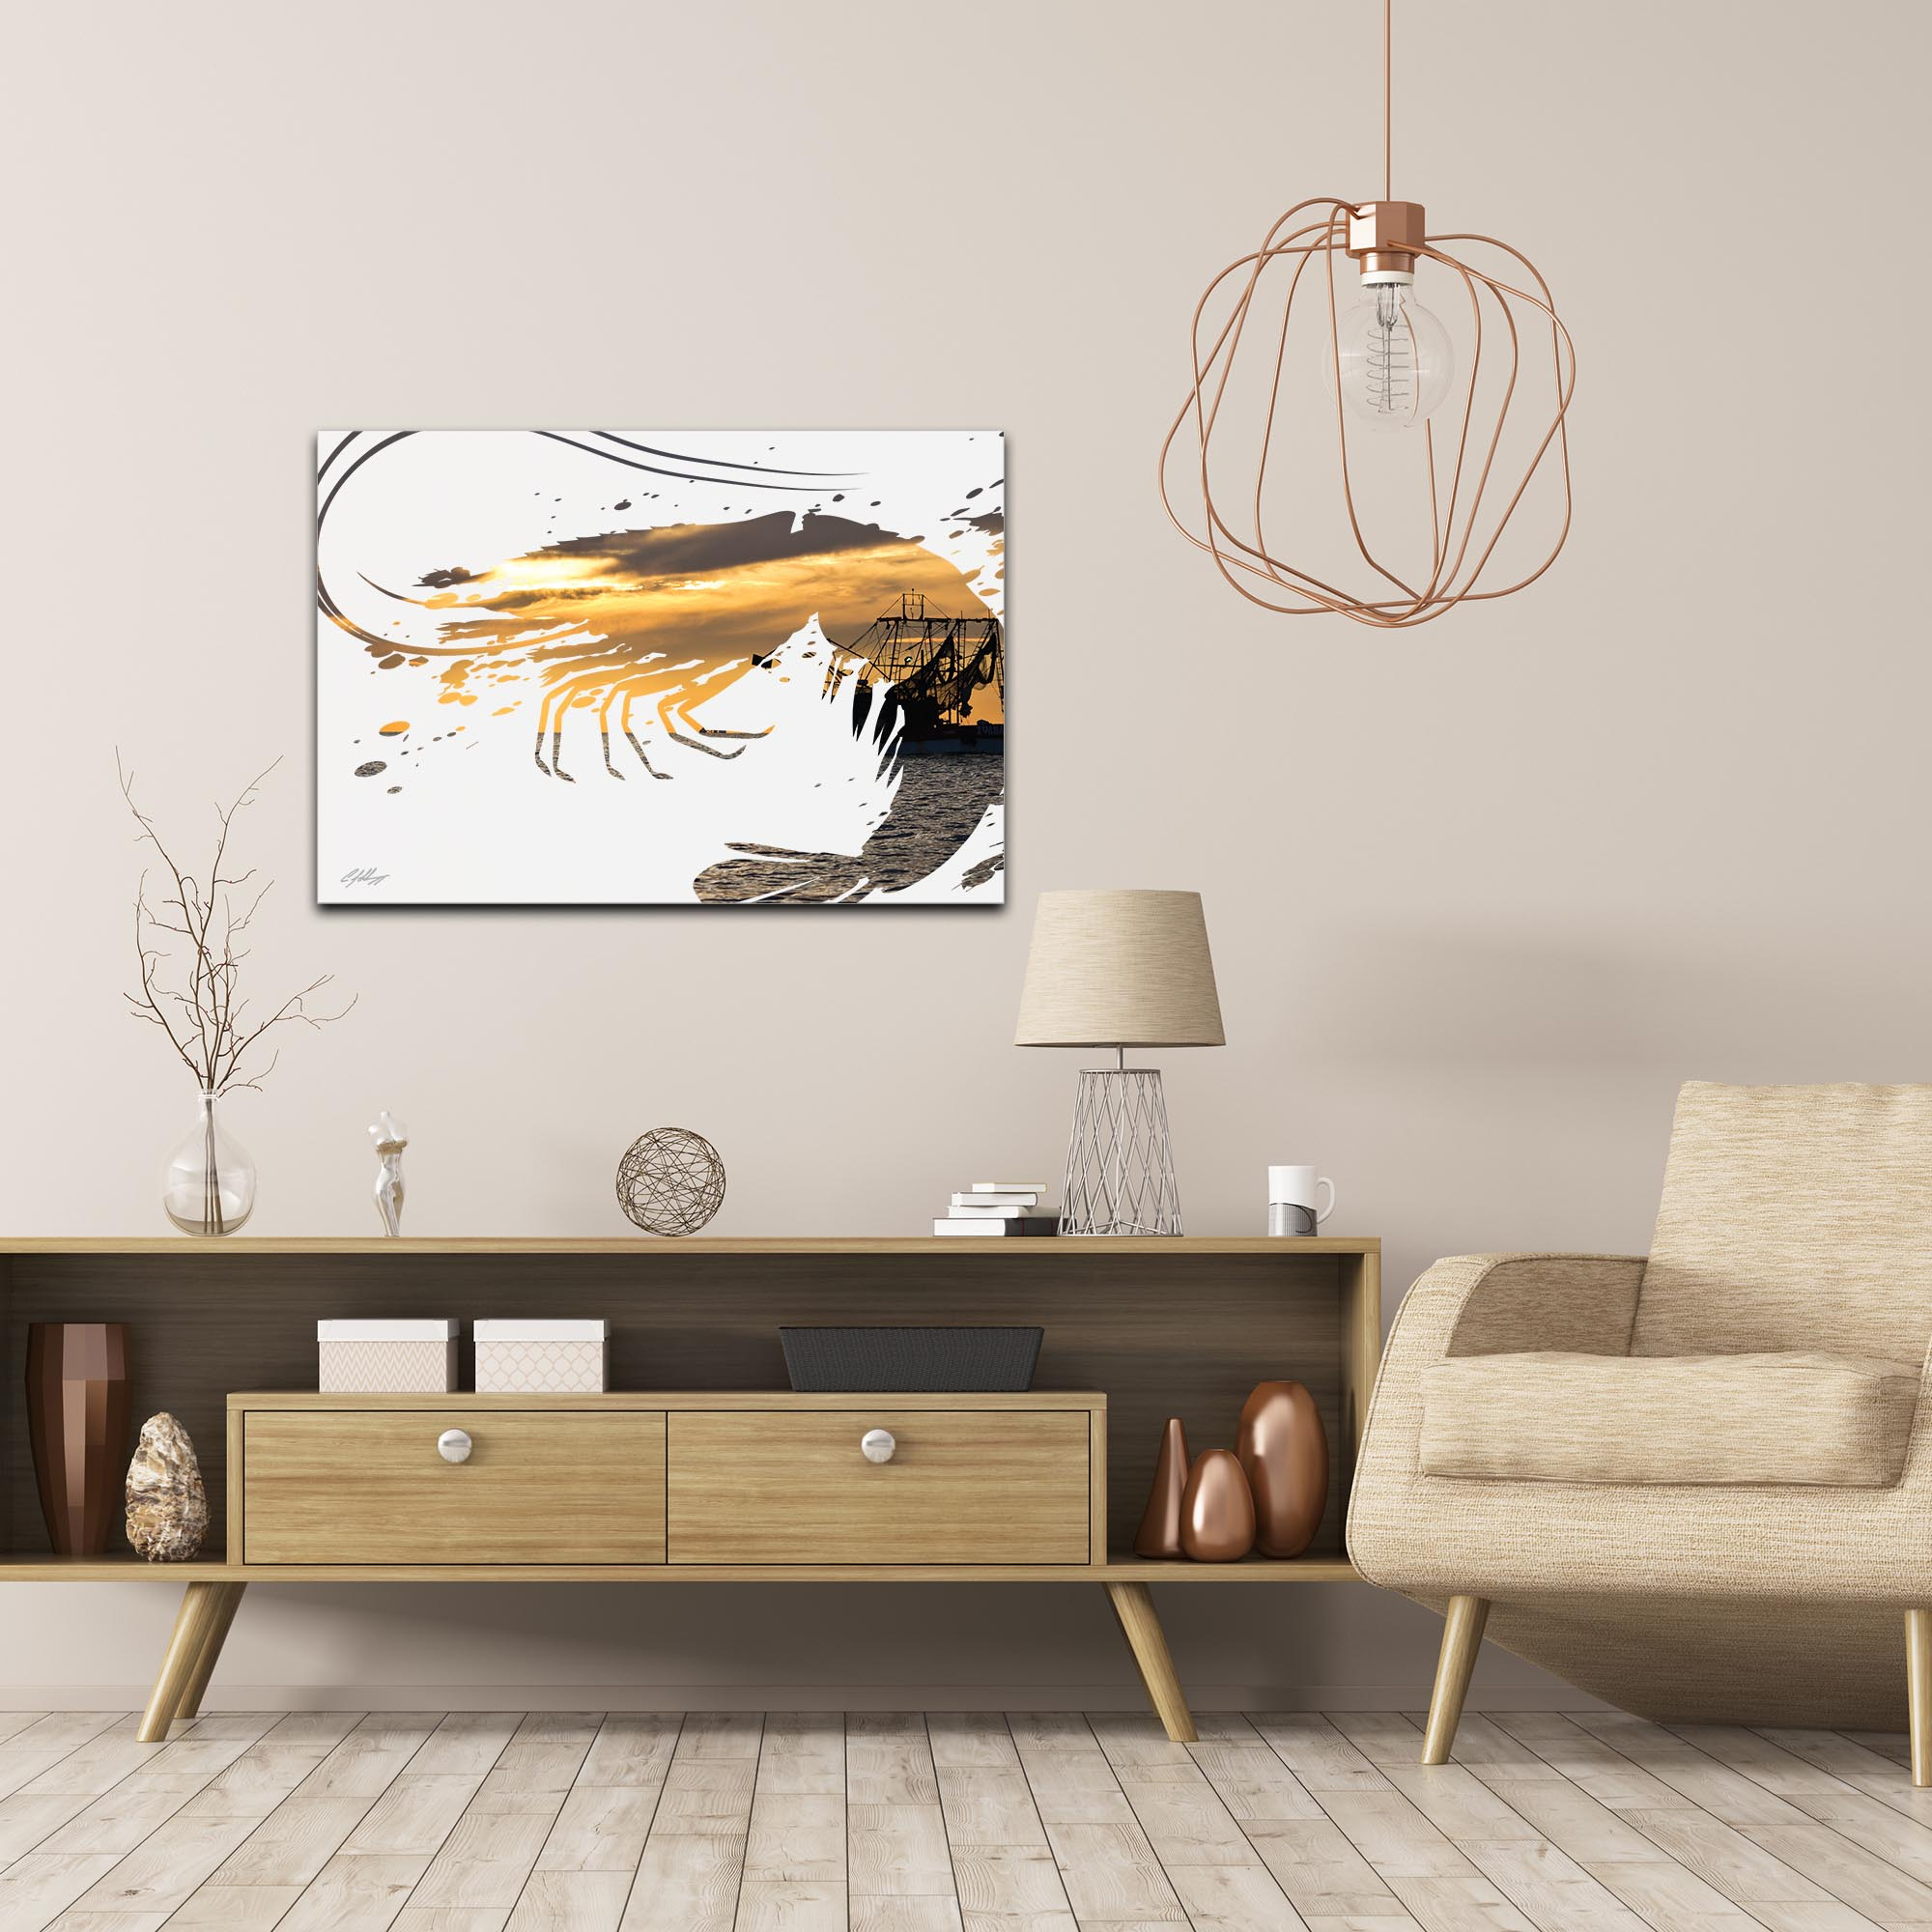 Shrimp Boat by Adam Schwoeppe Animal Silhouette on White Metal - Lifestyle View